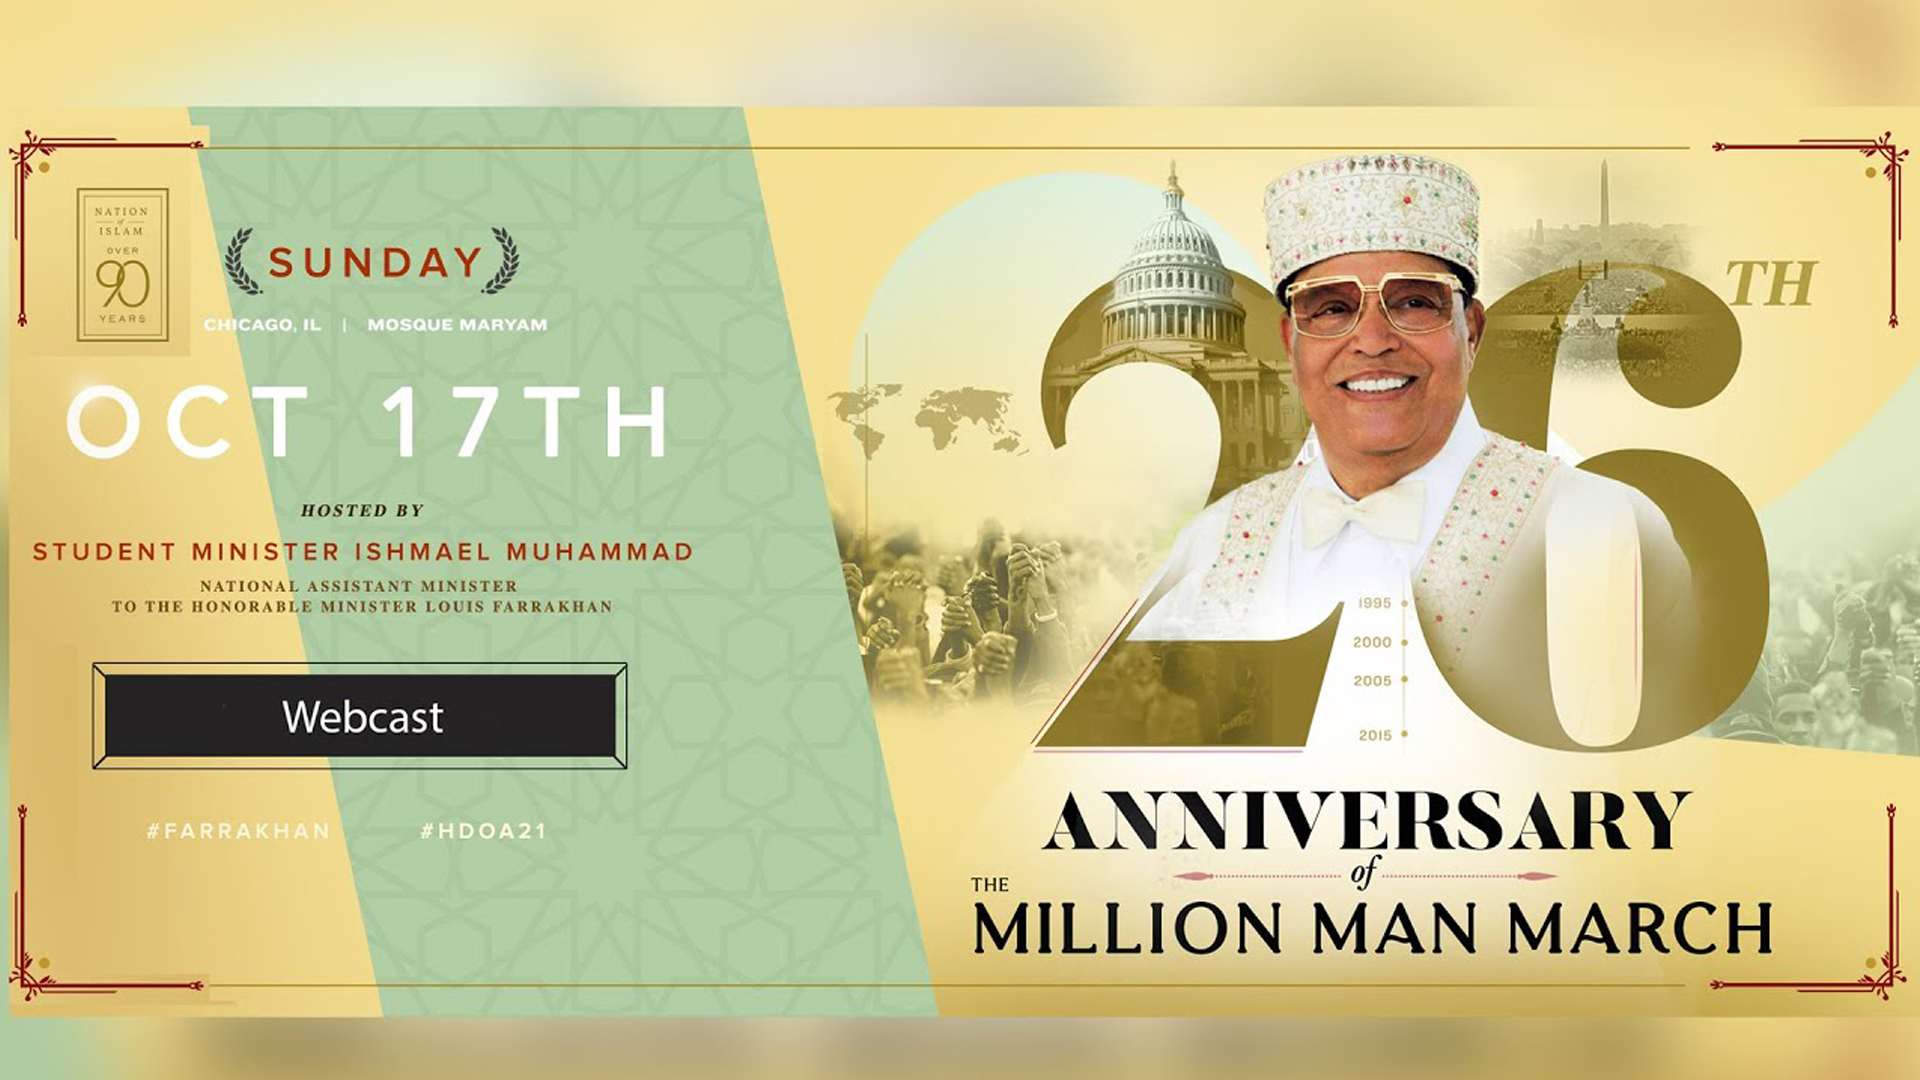 The 26th Anniversary of The Holy Day of Atonement and Million Man March